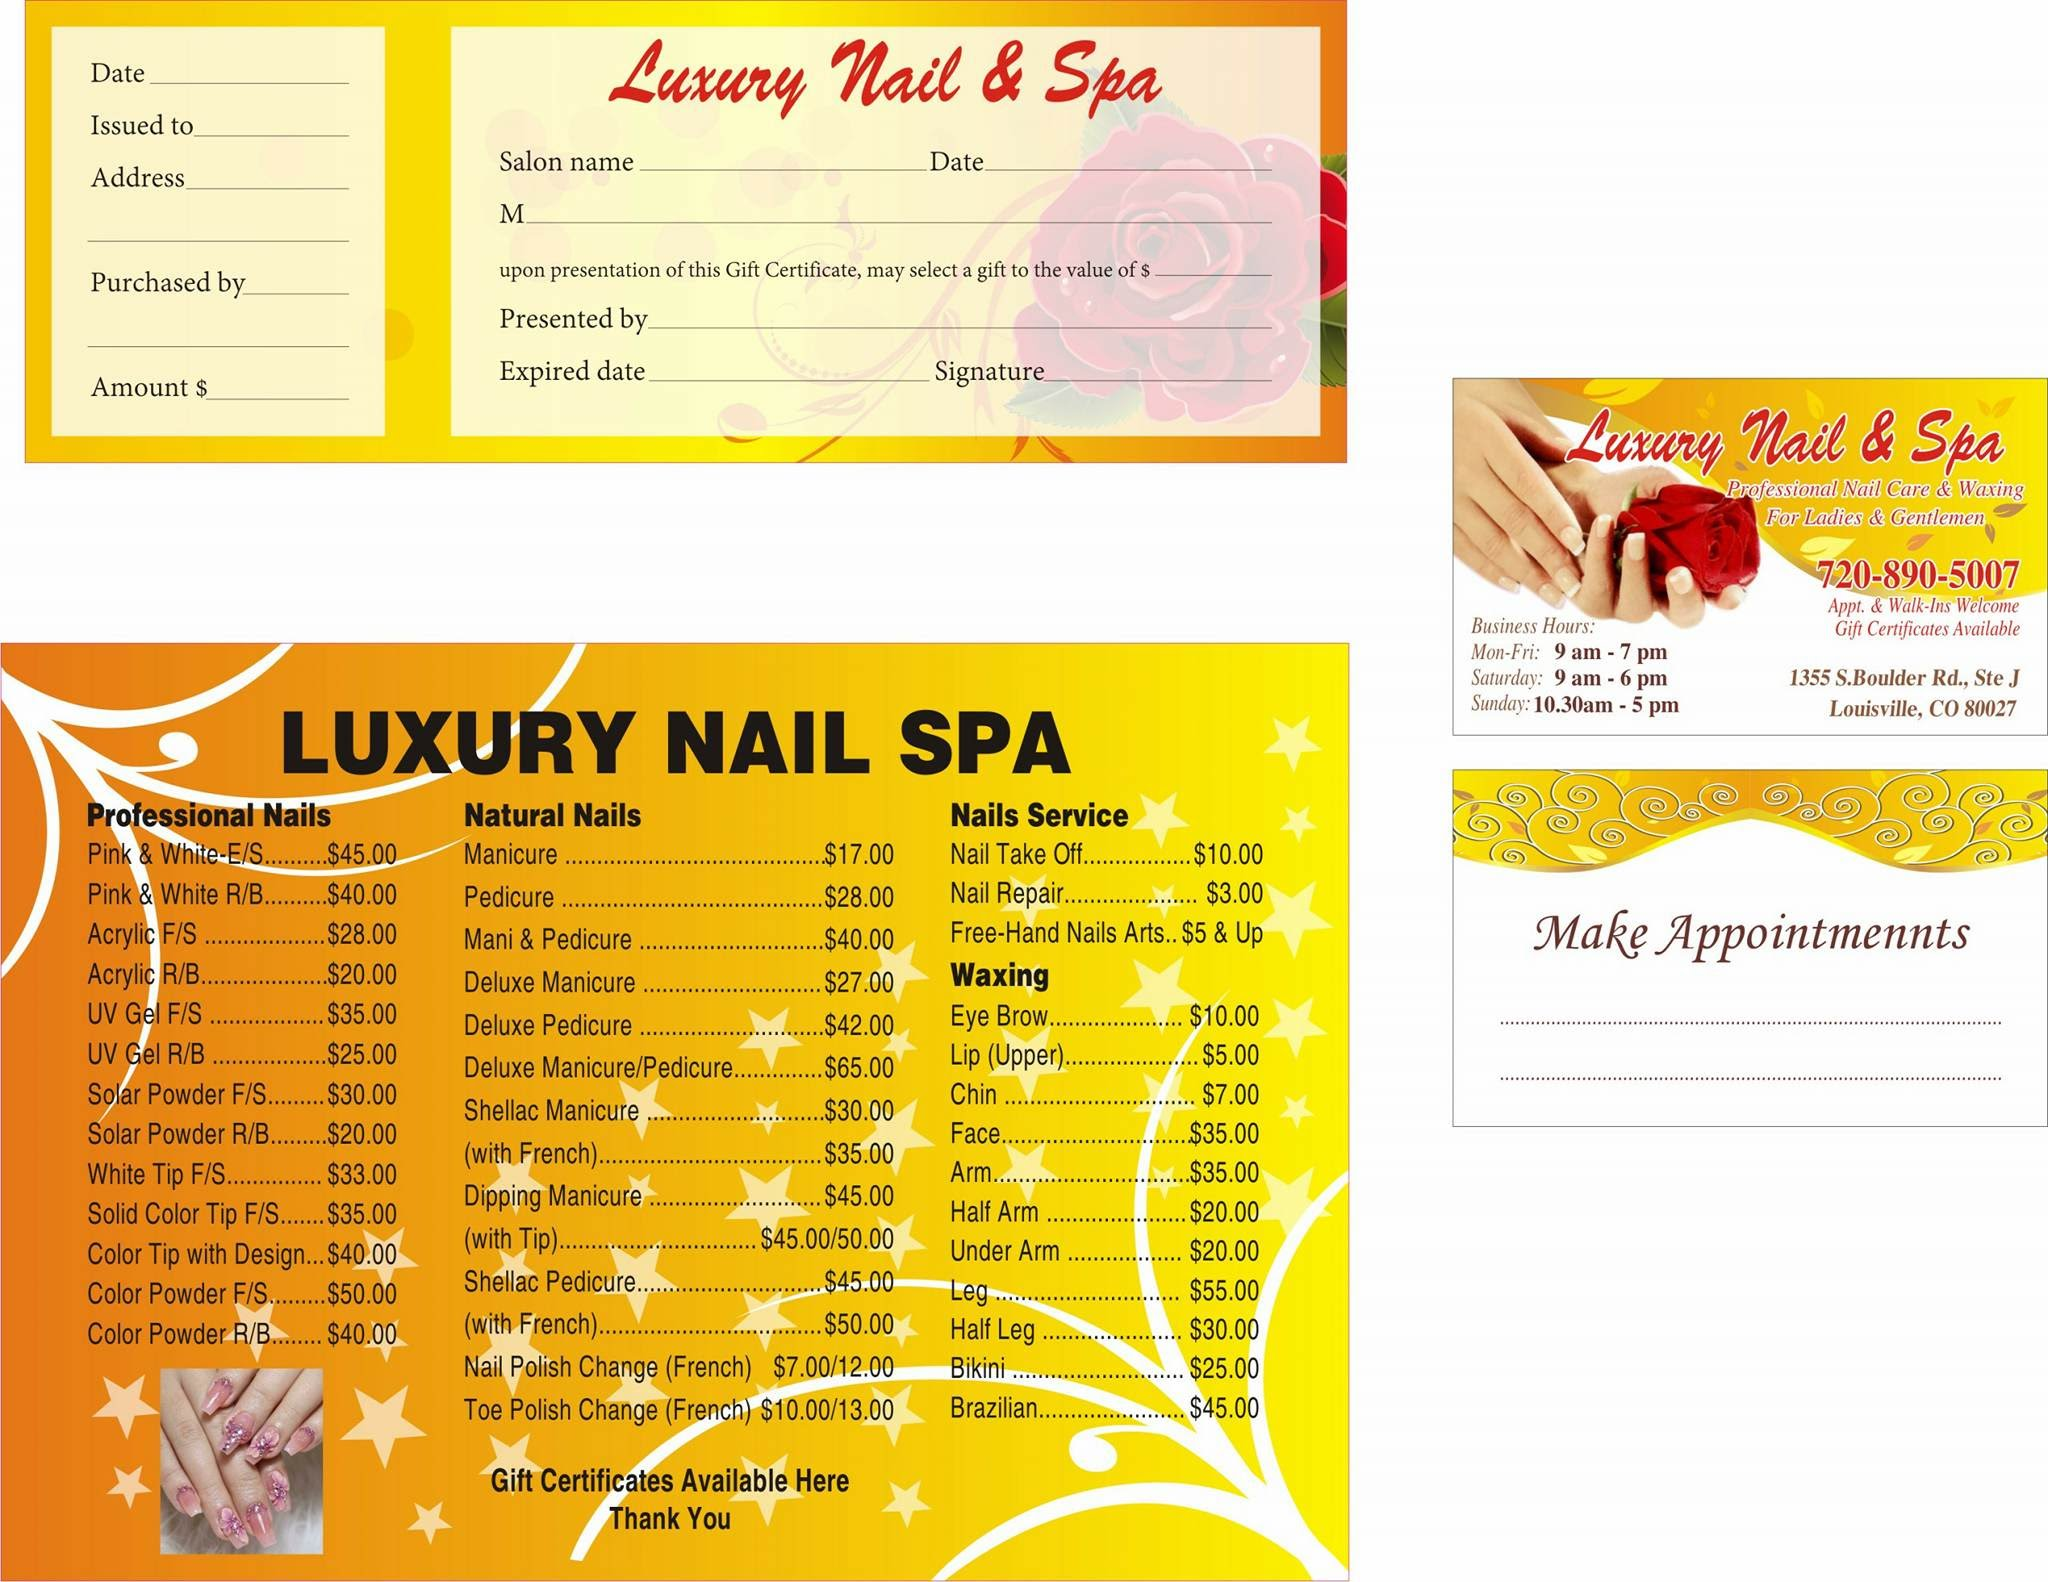 Luxury Nails and Spa